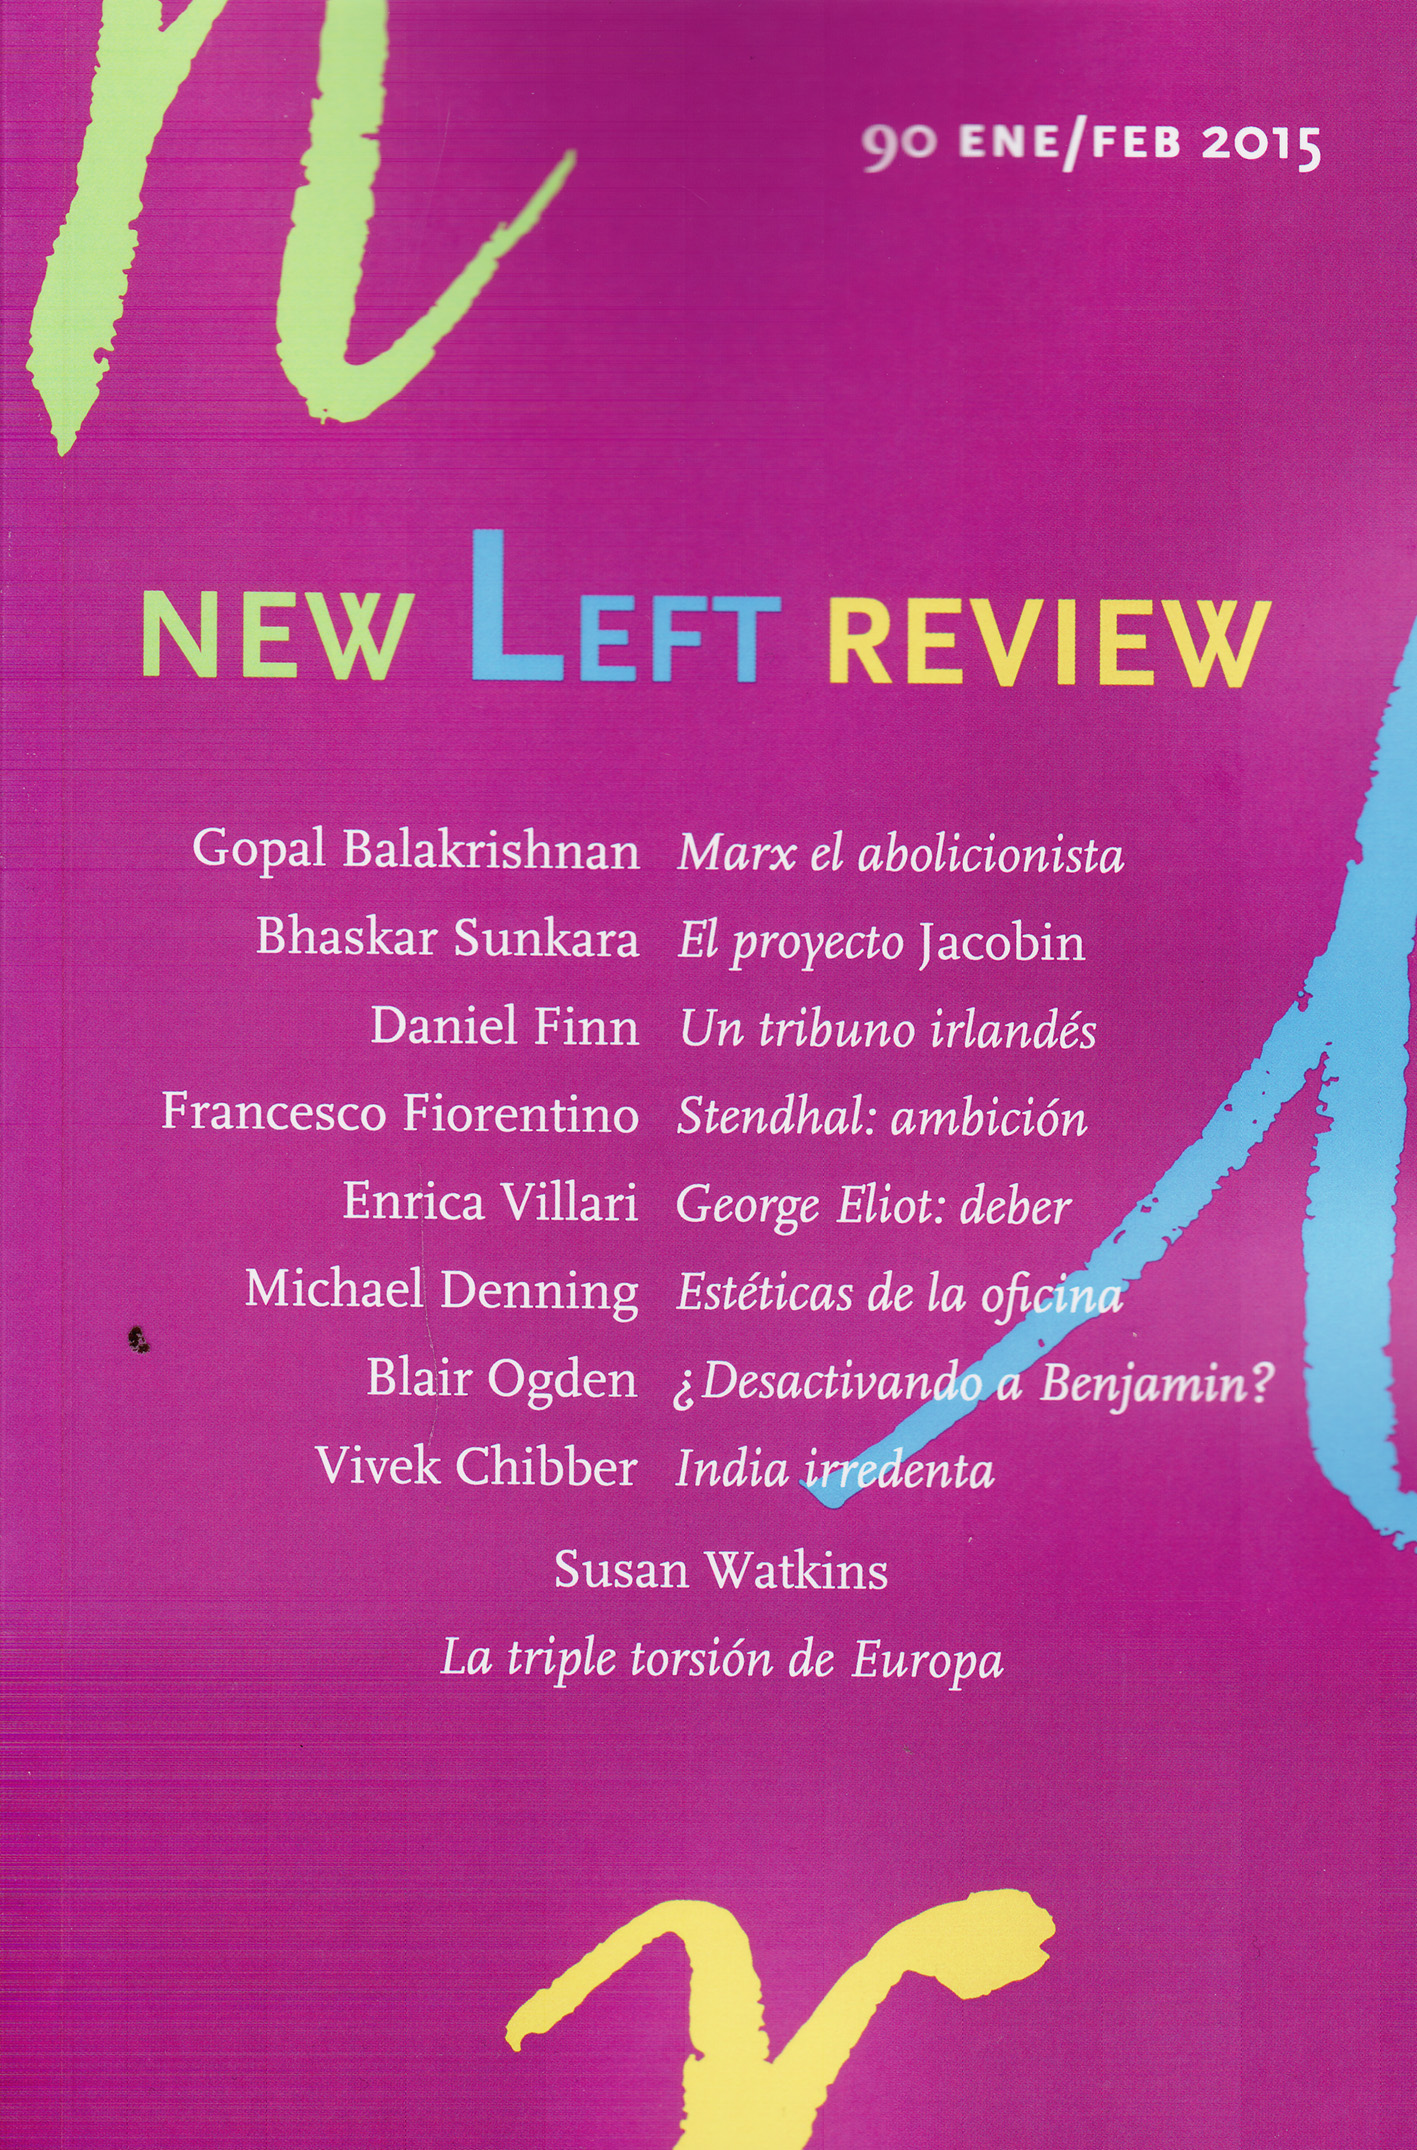 new-left-review-90-